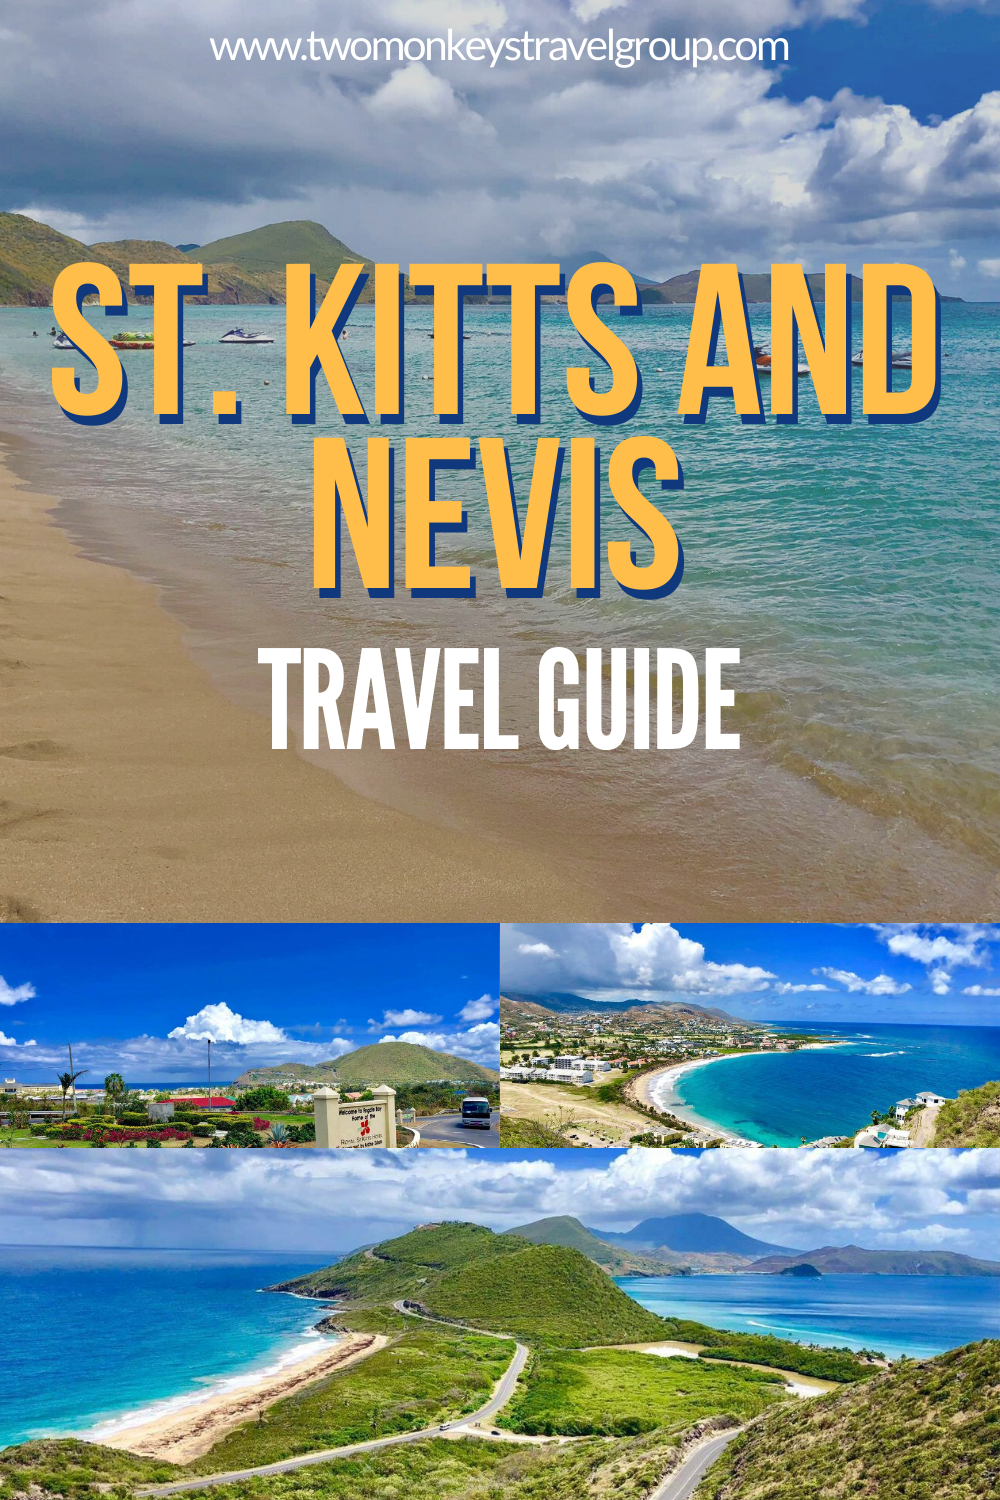 Travel Guide to St. Kitts and Nevis – How, Where & Frequently Asked Questions